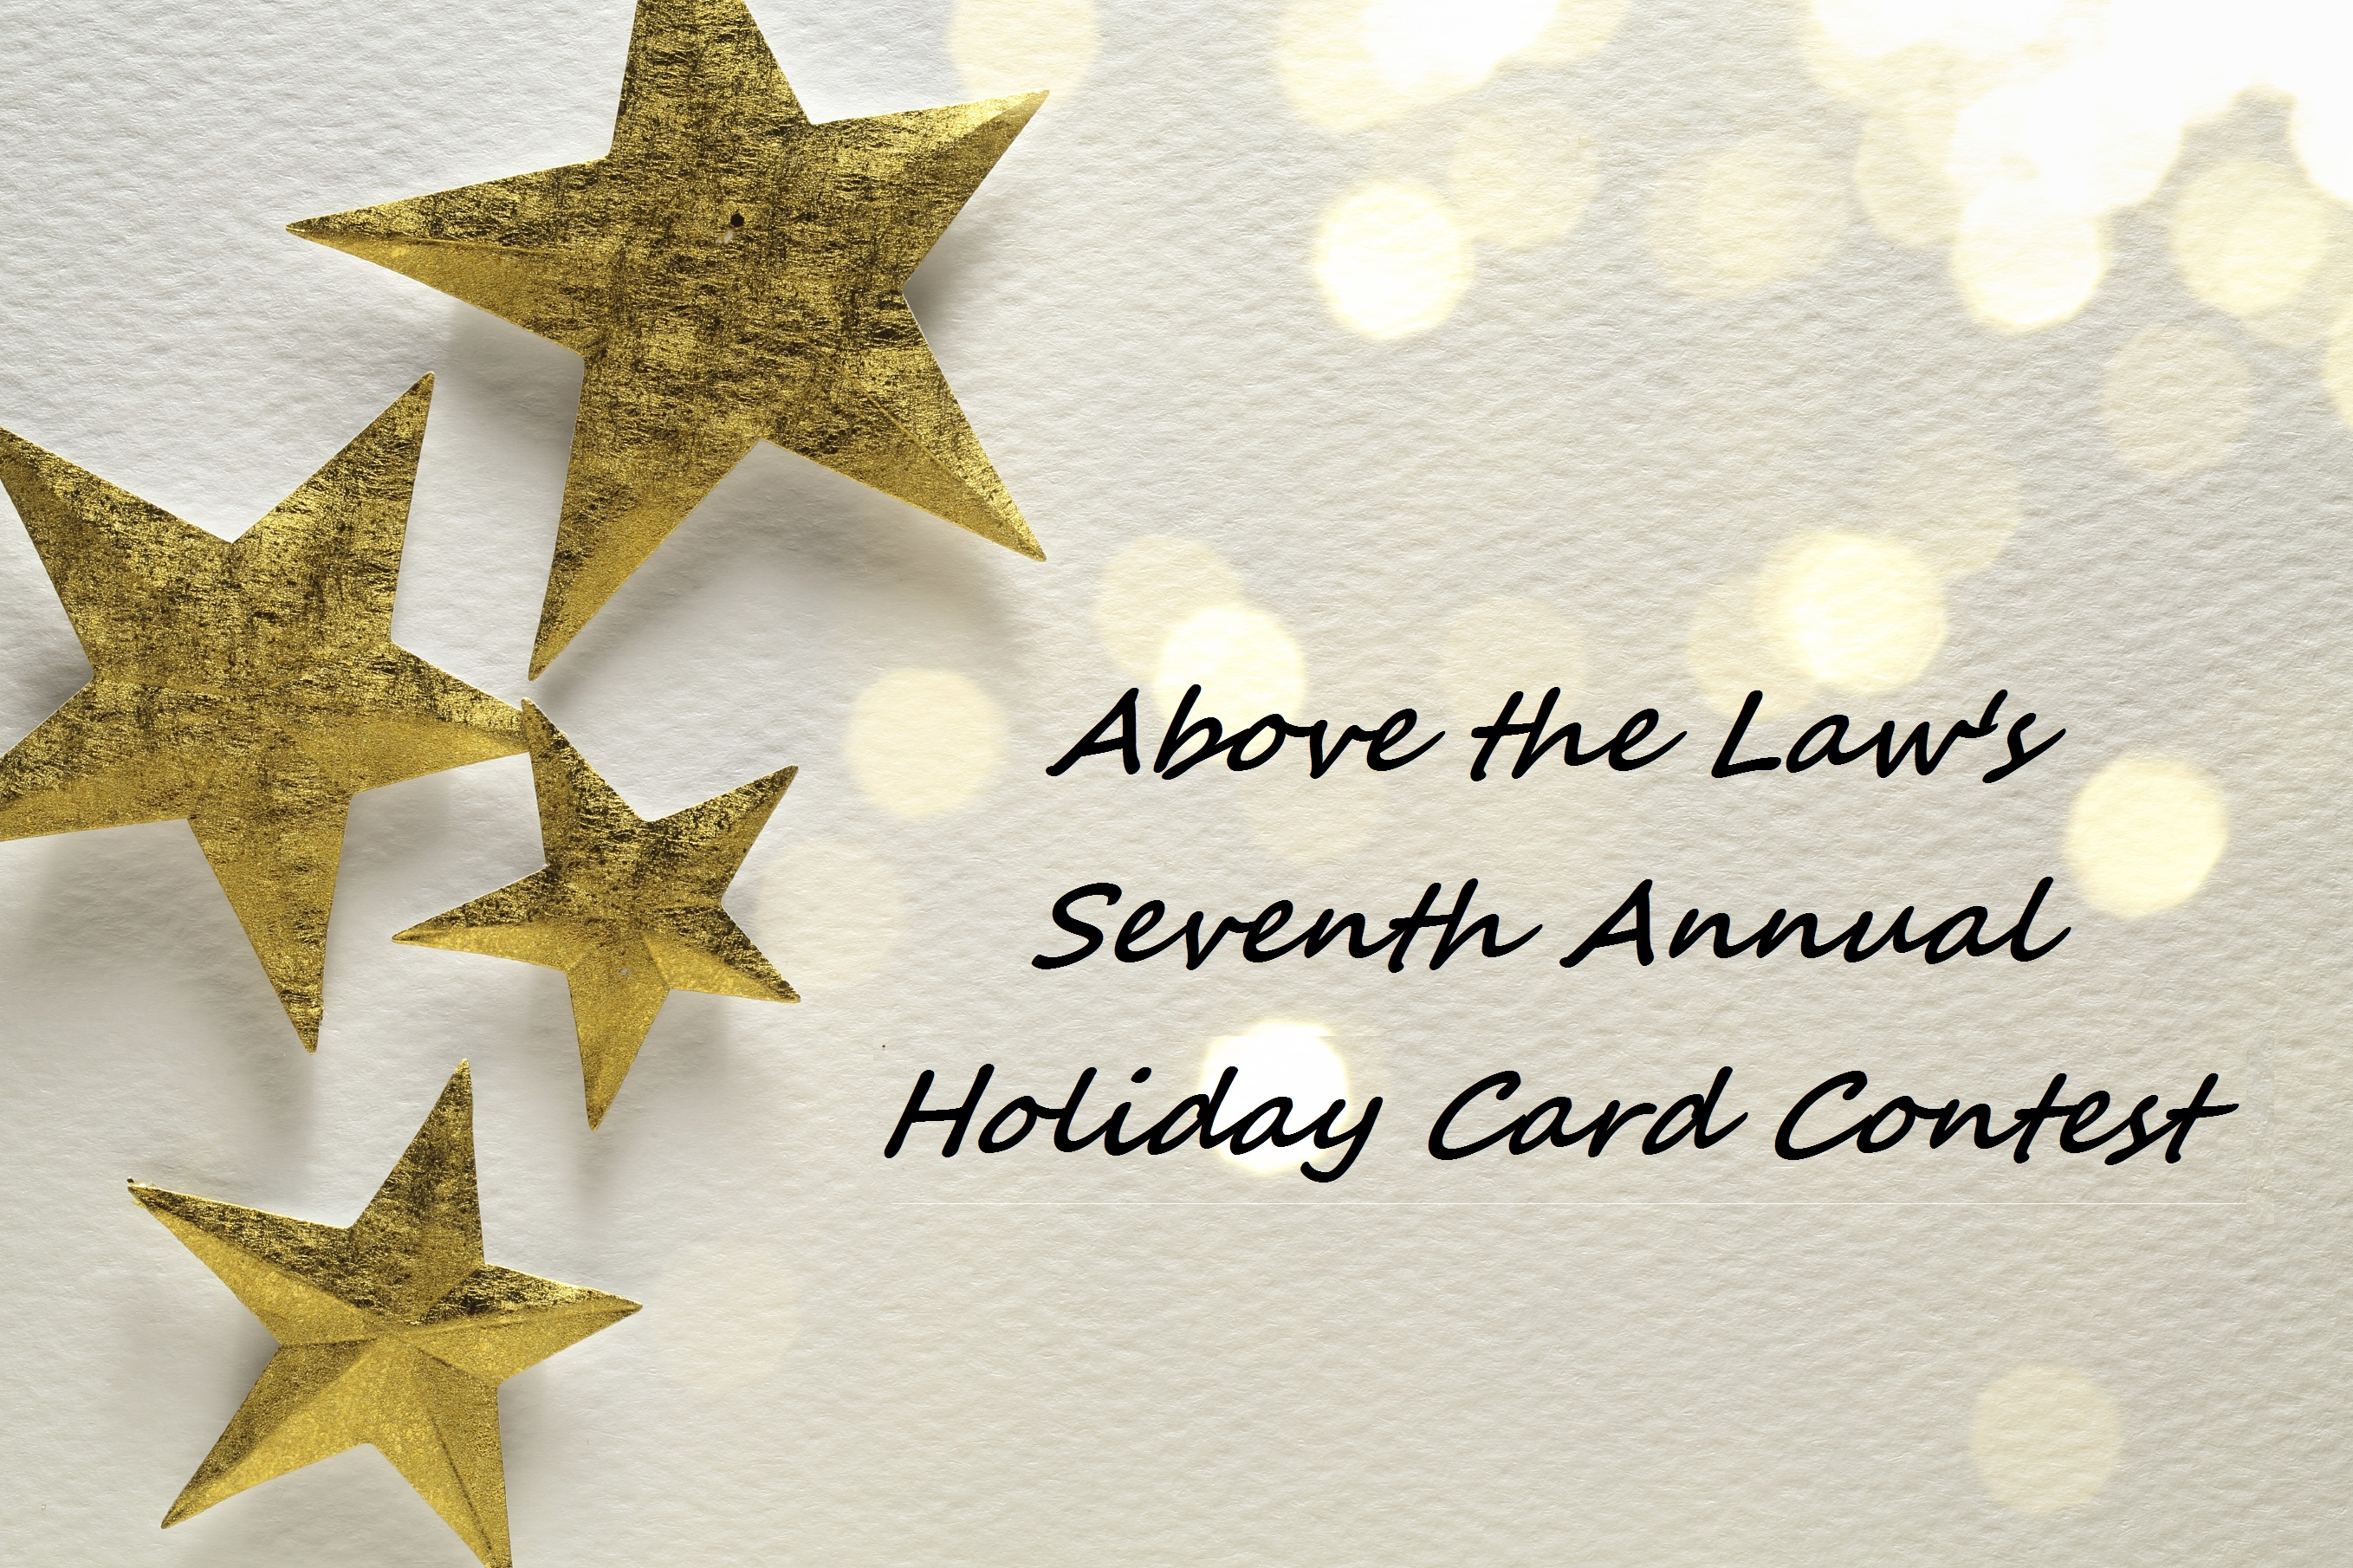 Above The Law's 7th Annual Holiday Card Contest